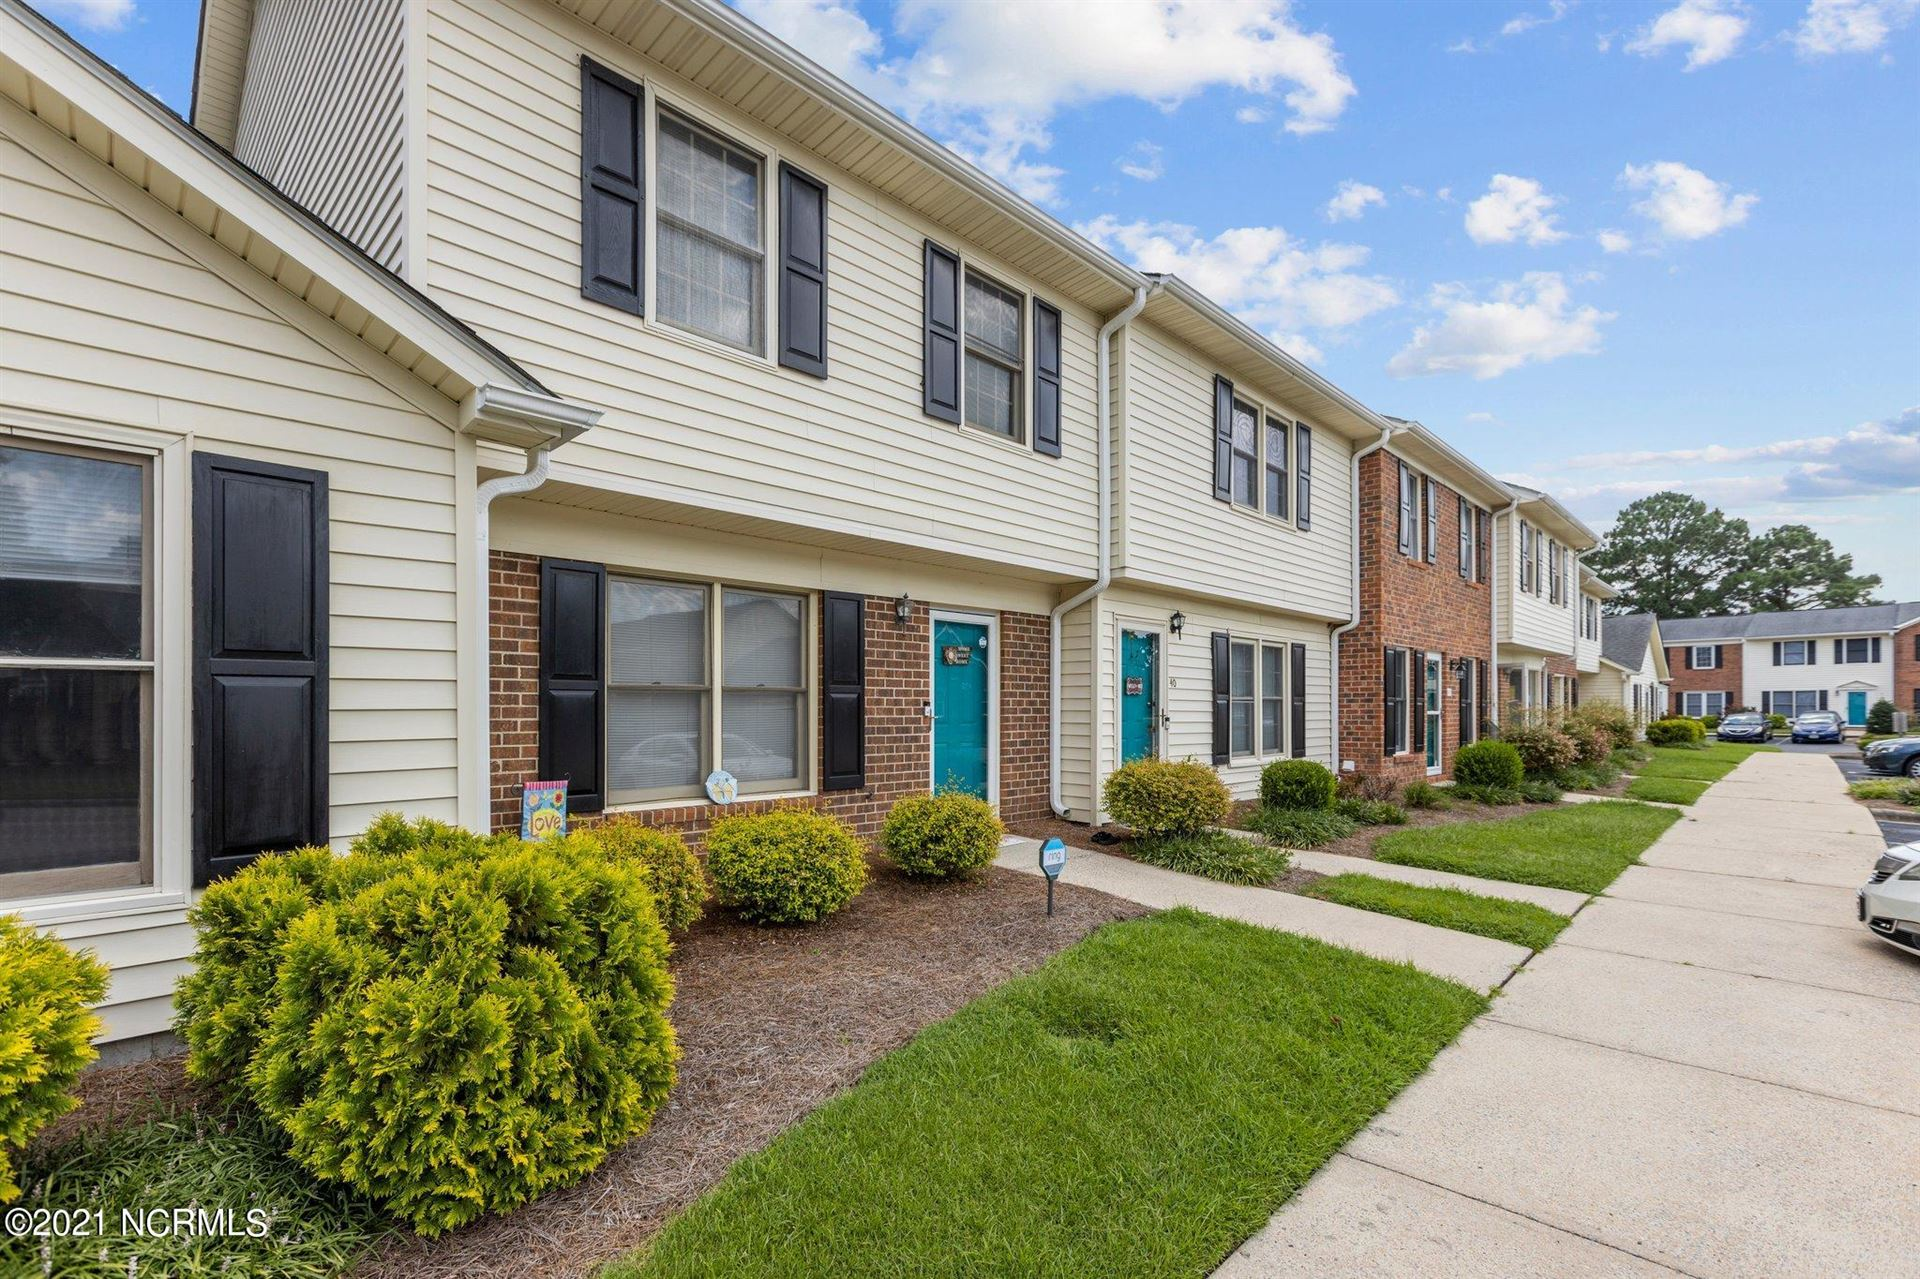 Photo of 2700 Thackery Road #39, Greenville, NC 27858 (MLS # 100285629)